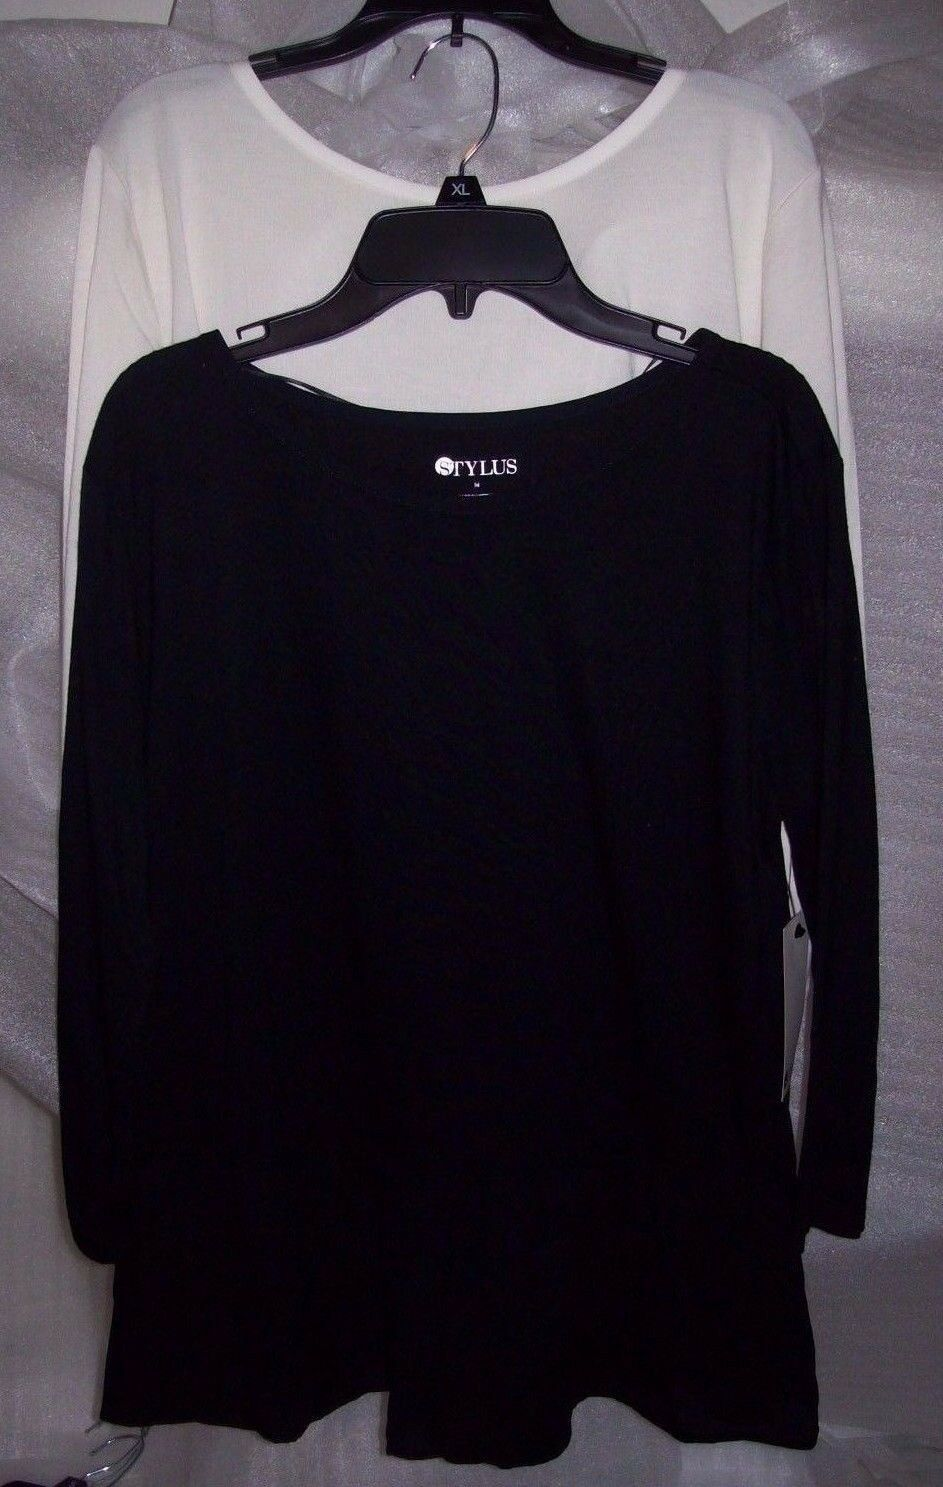 WOMENS STYLUS TOPS MULTIPLE COLORS AND SIZES NEW WITH TAGS M